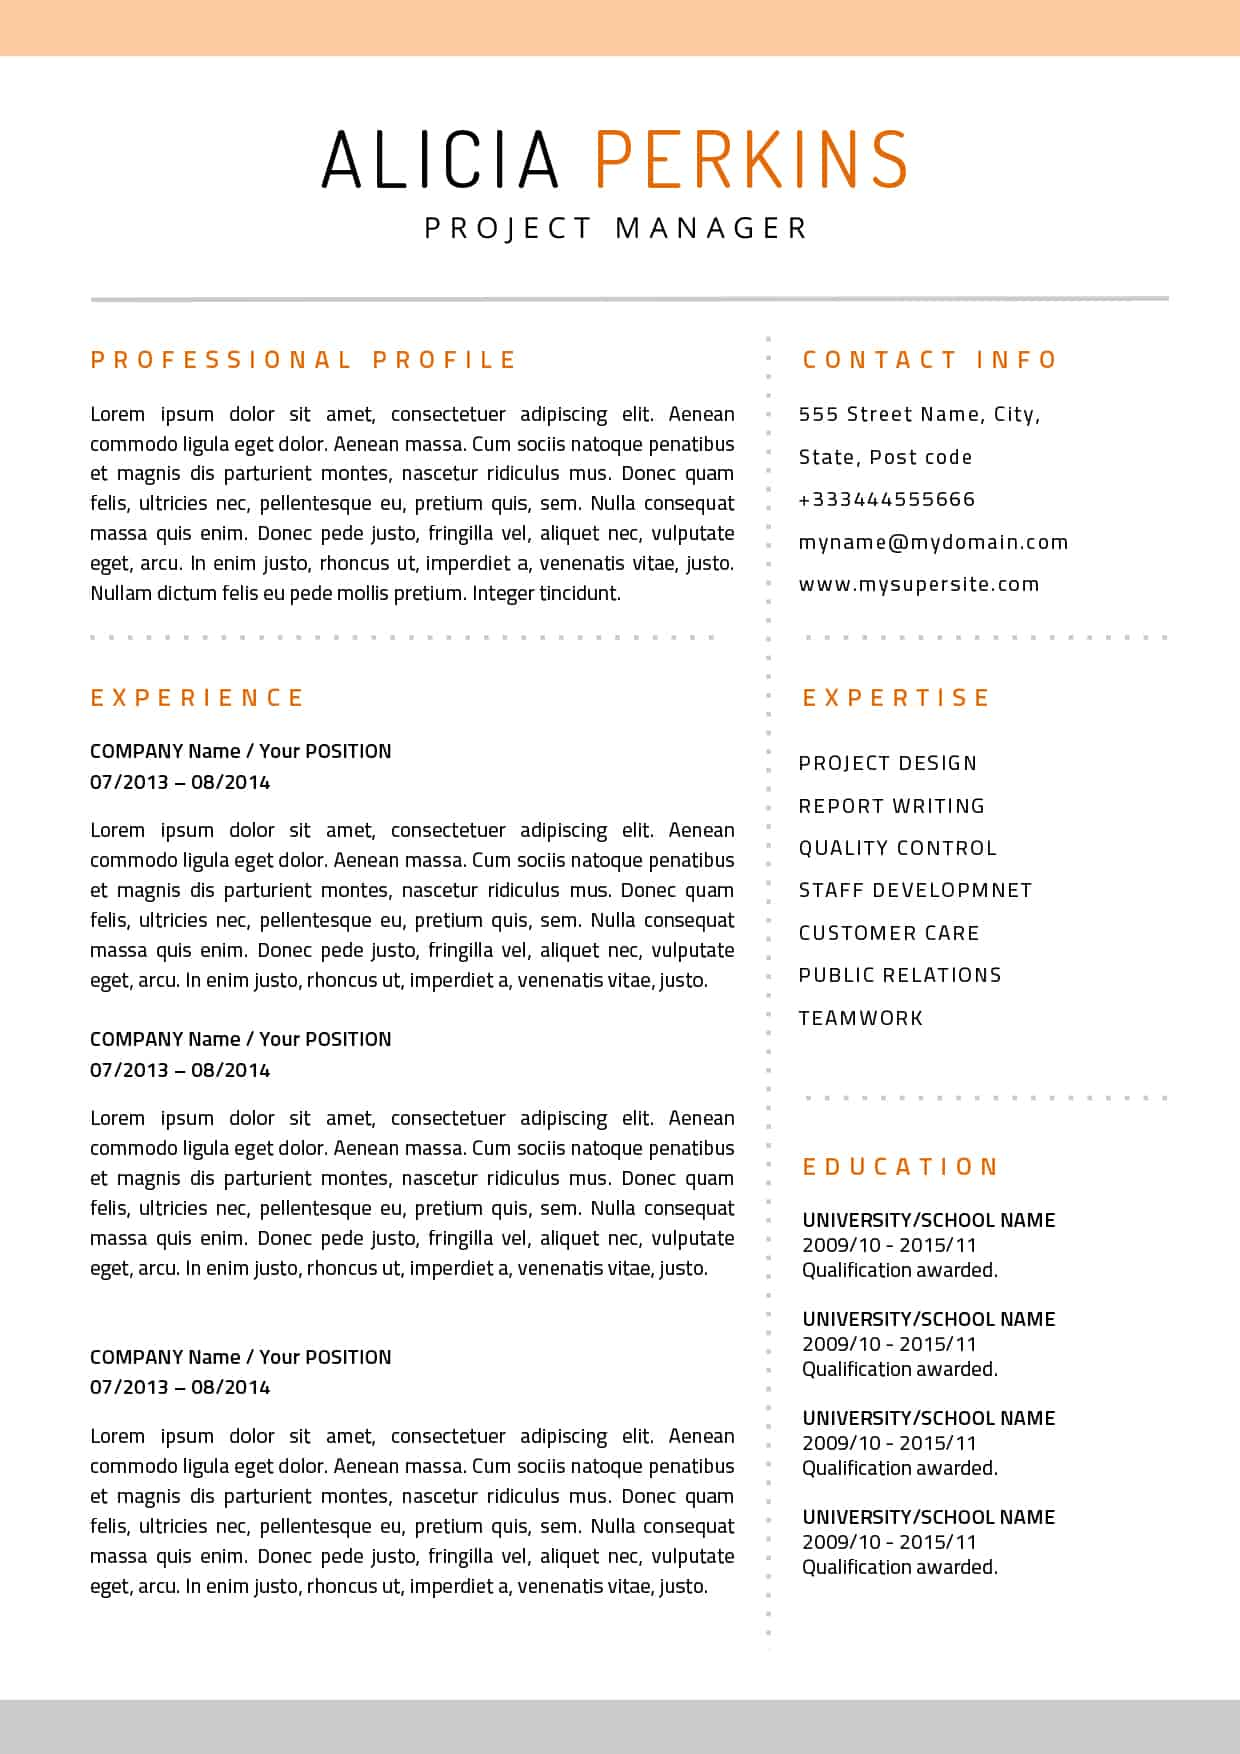 Top 5 Resume Templates for Mac - HashThemes